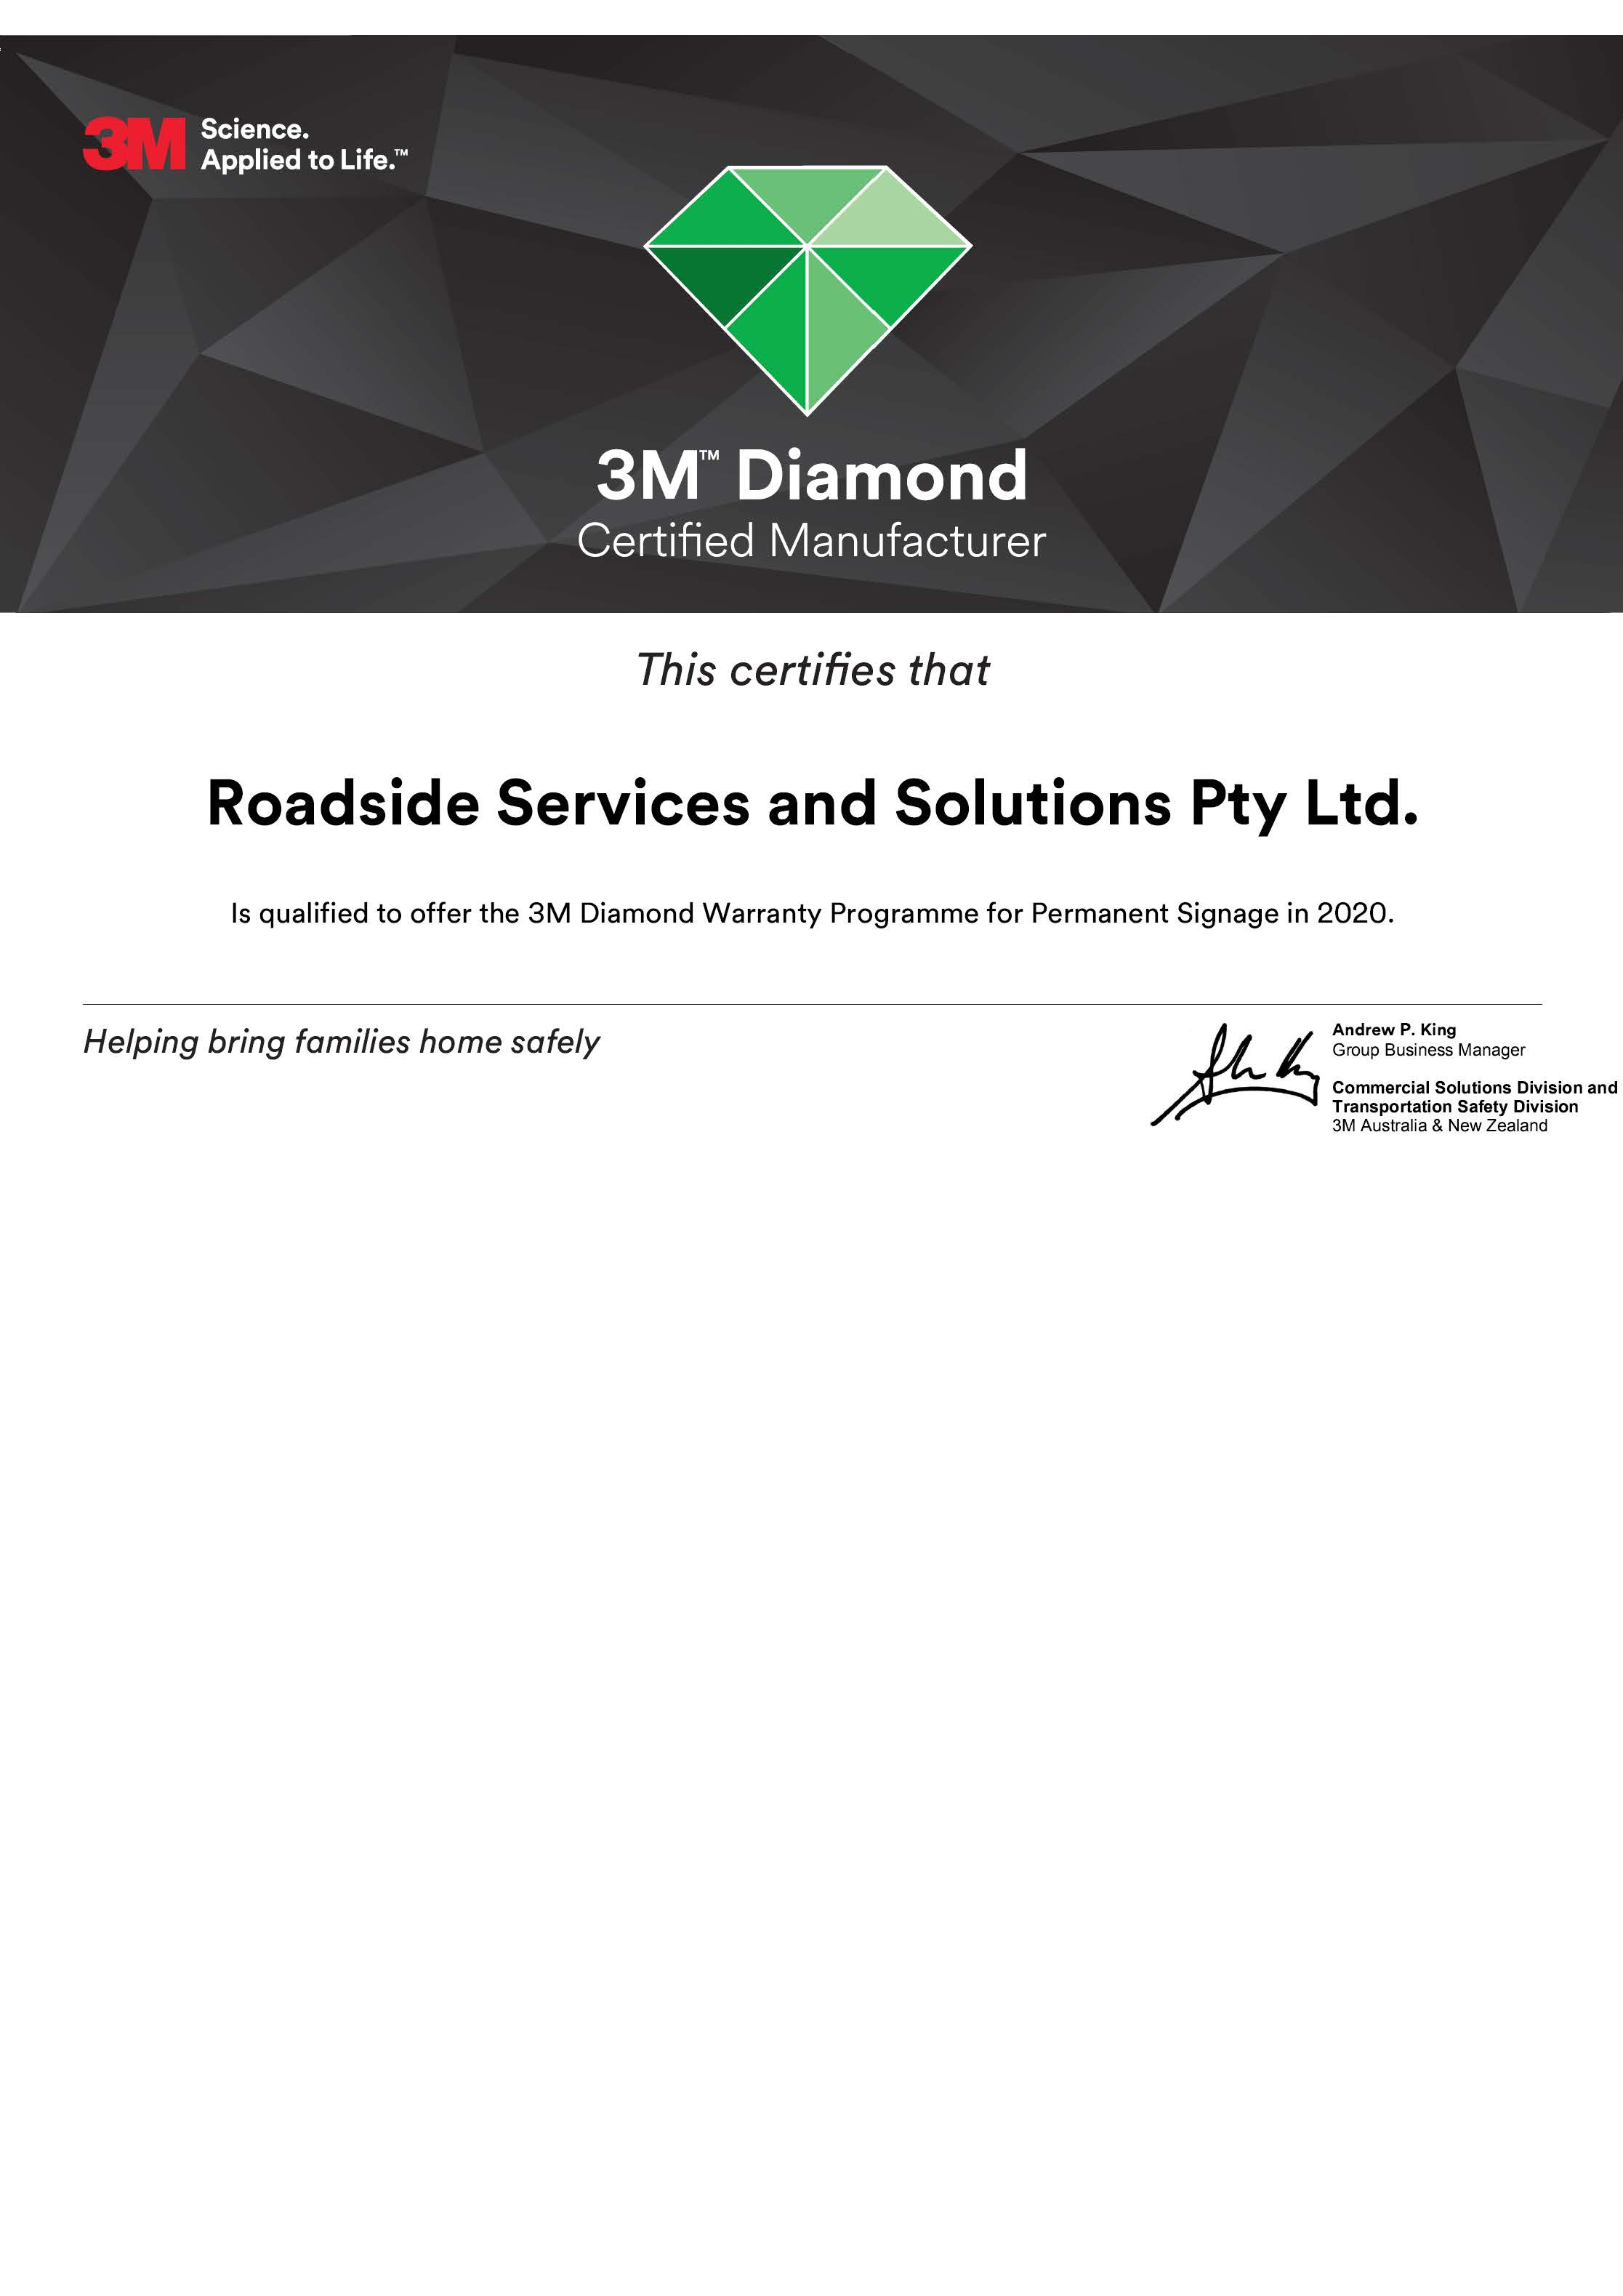 3M Diamond Certified Manufacturer Certificate